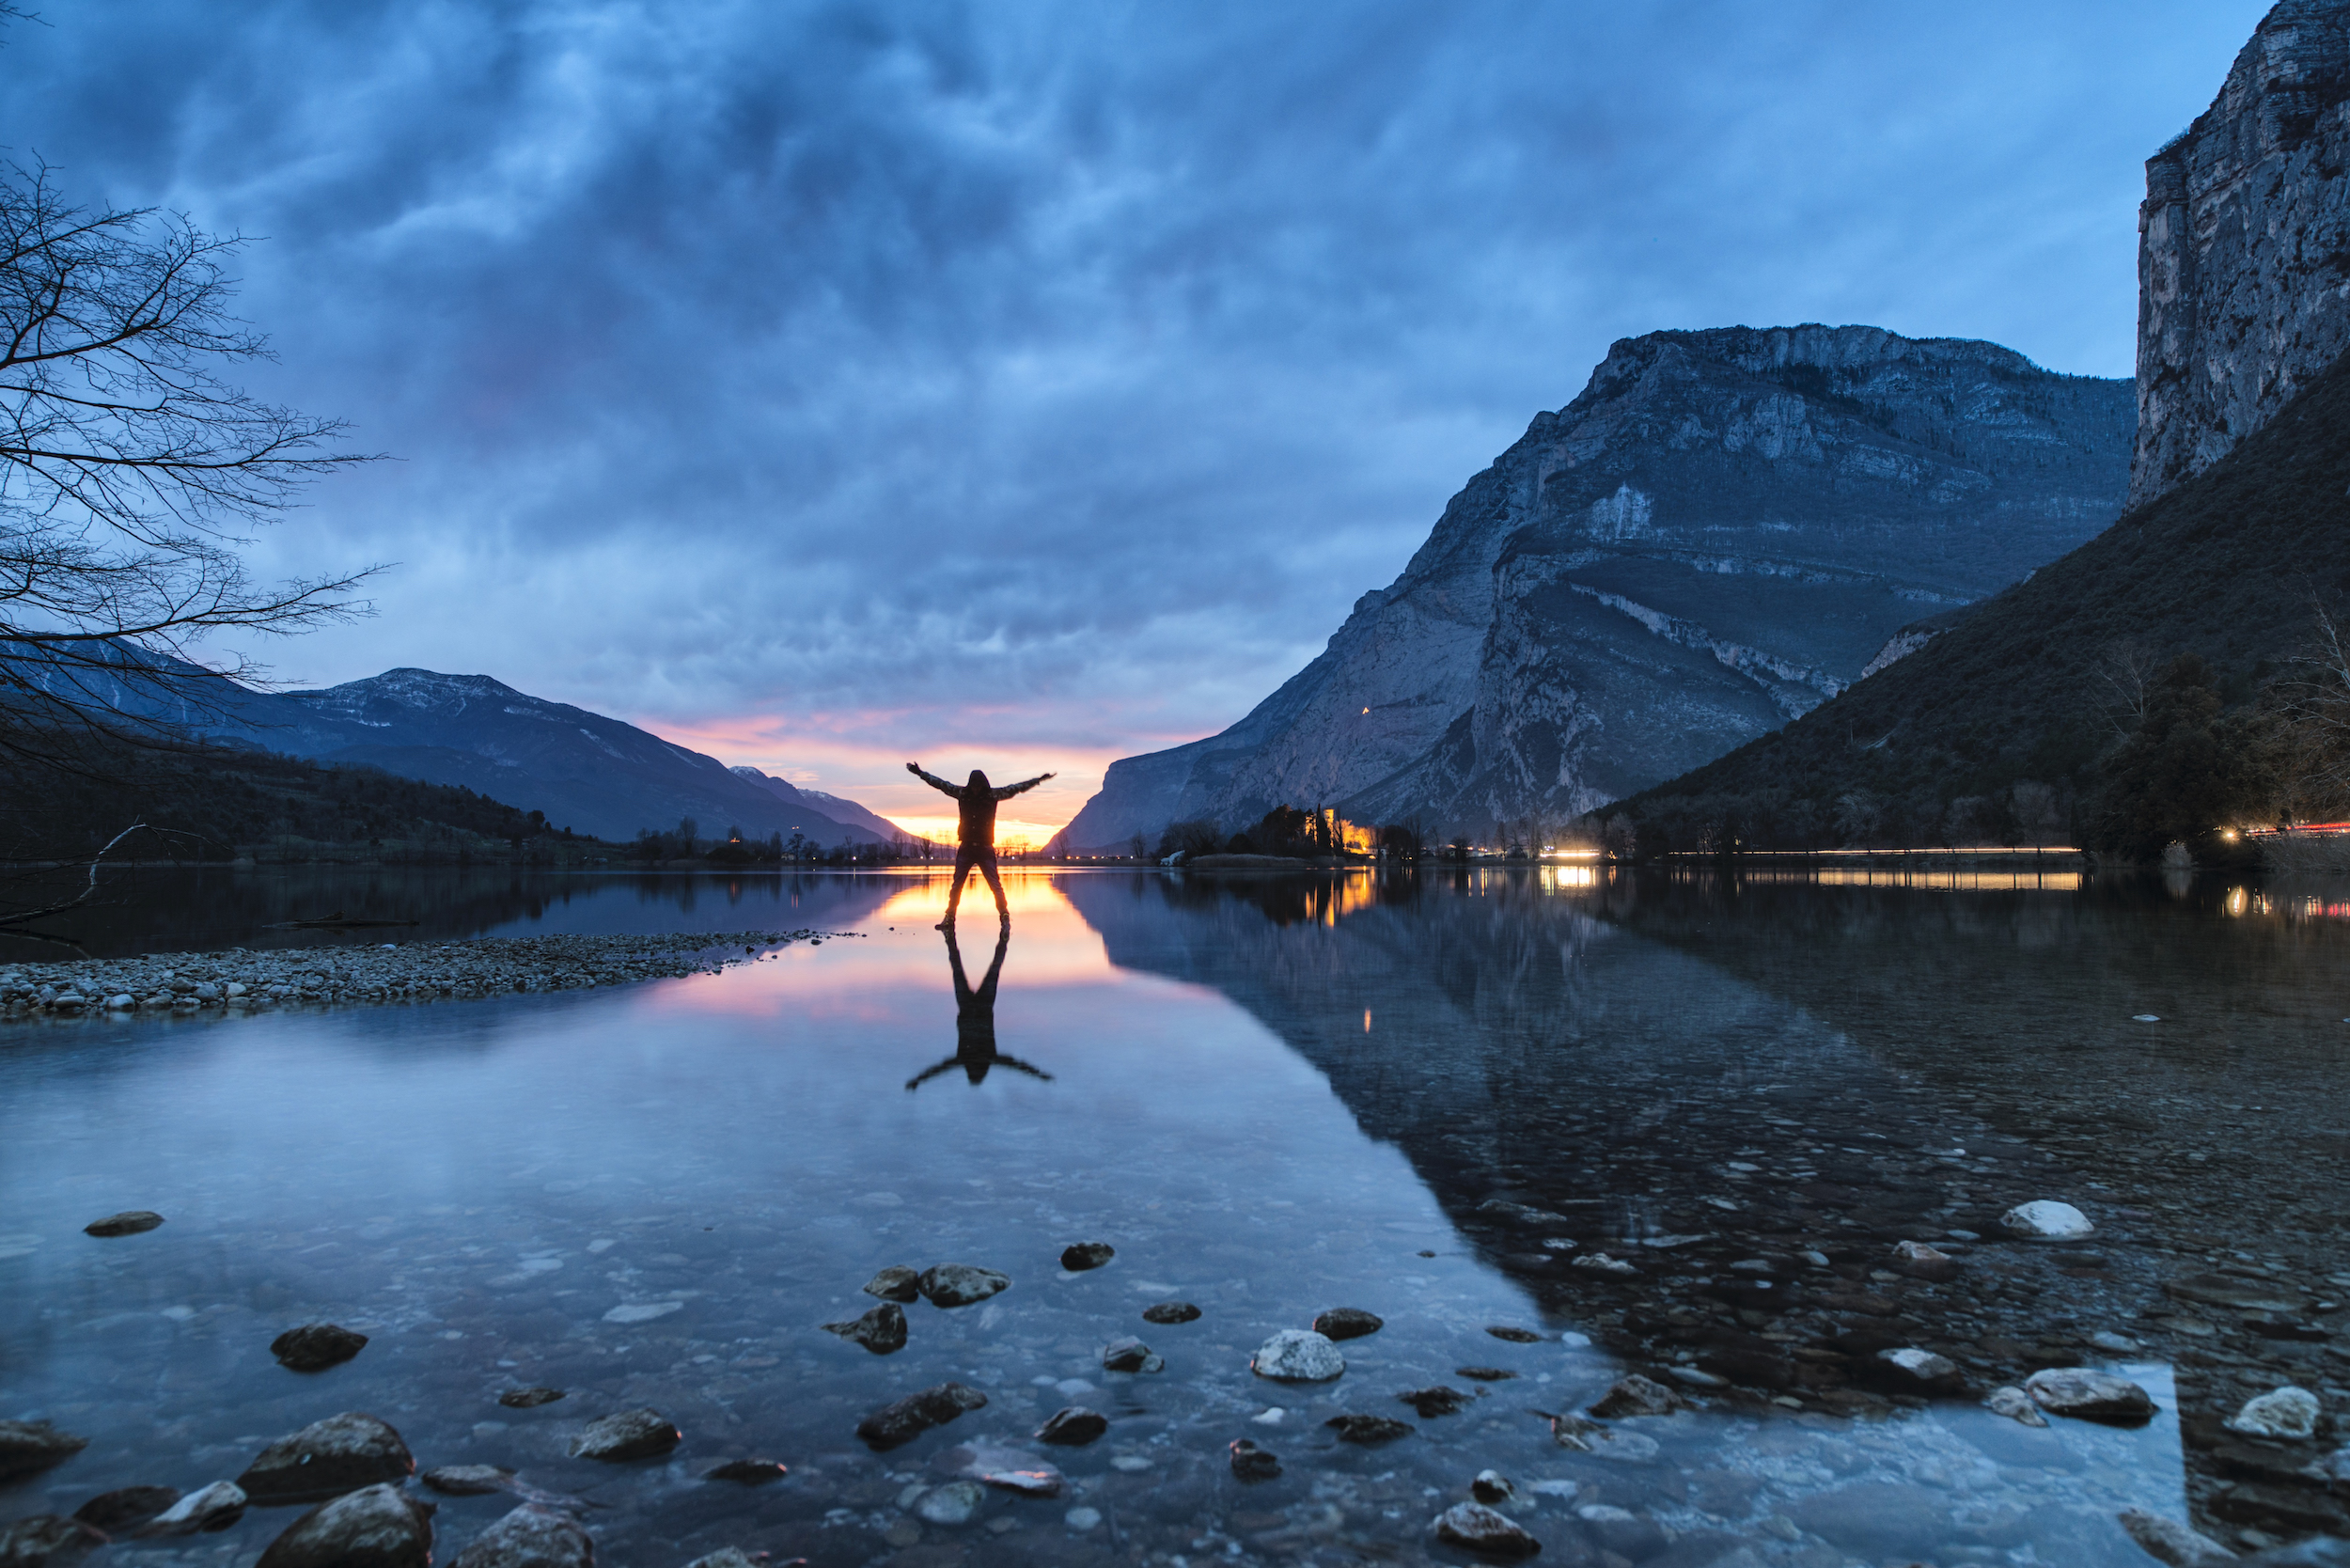 Blue hour on Lake Toblino, Northern Italy.